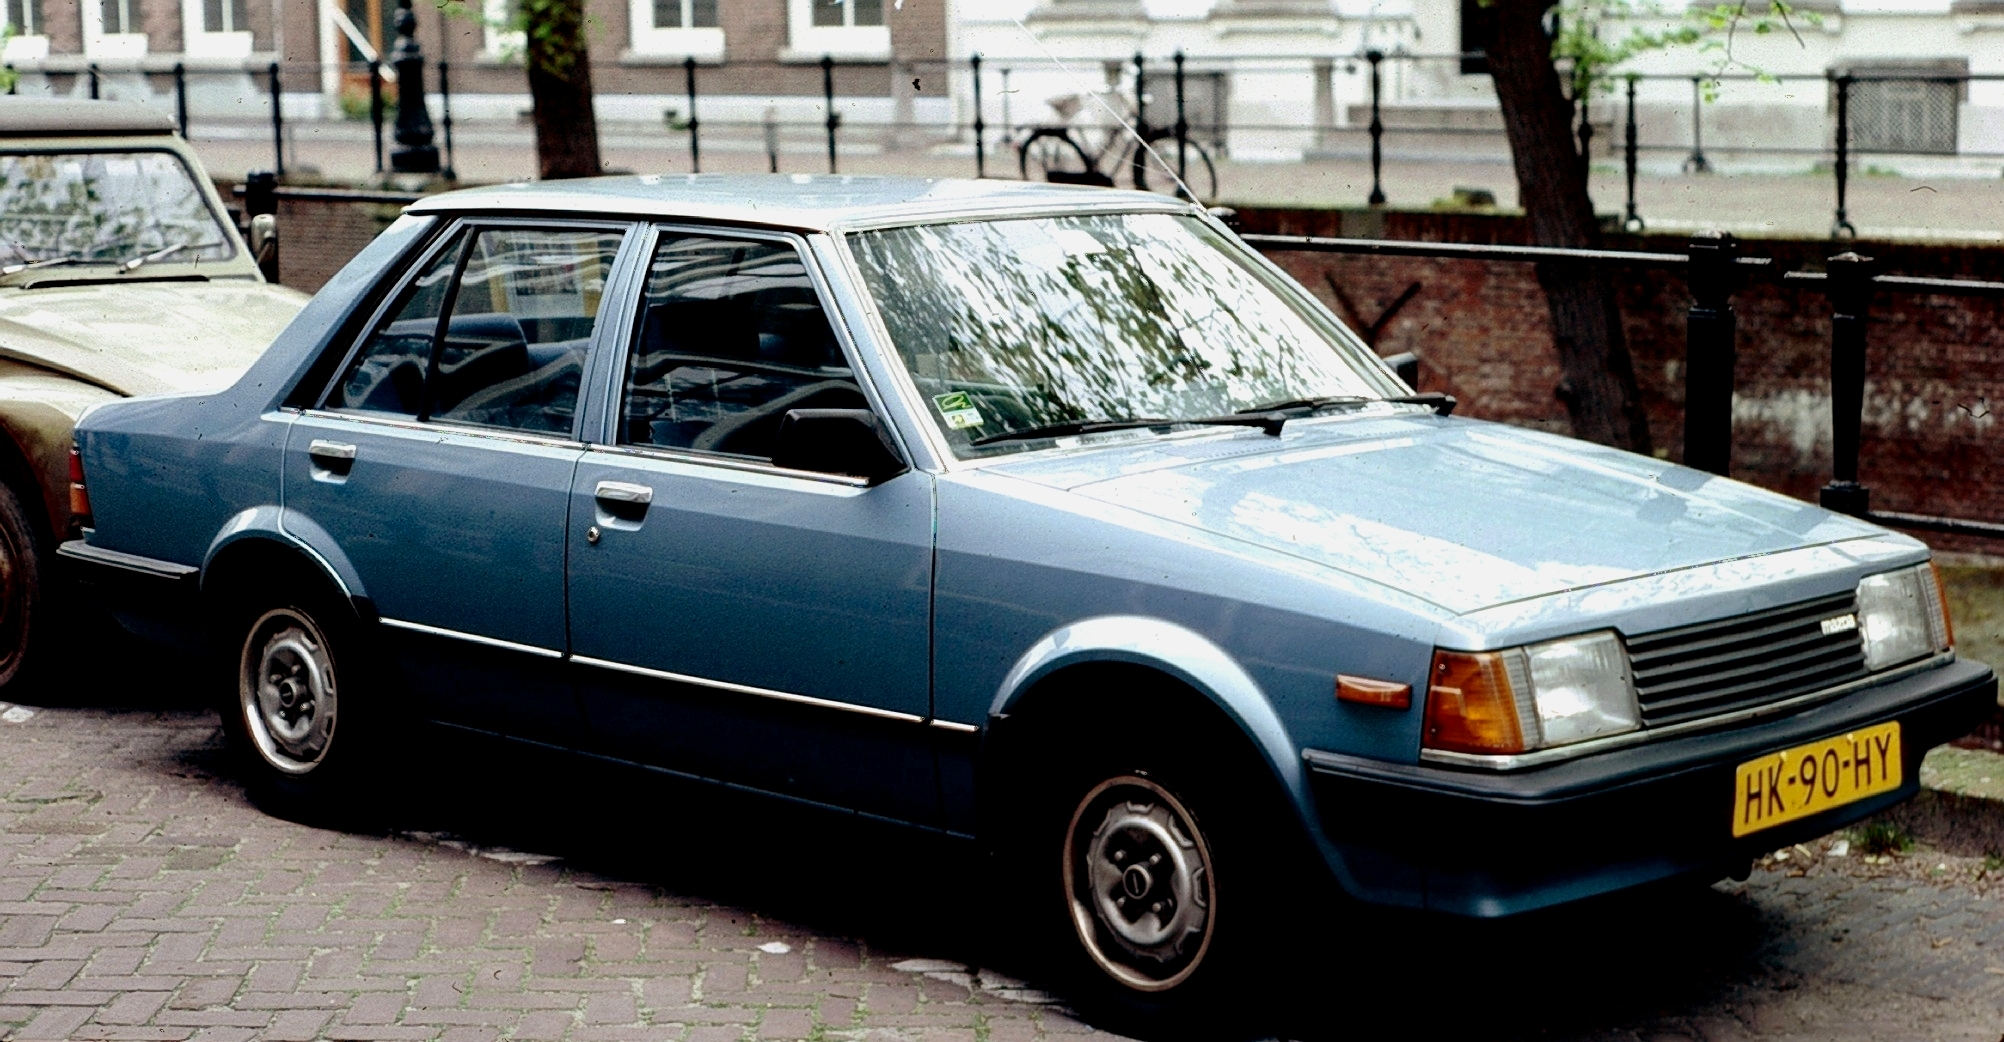 mazda 323f 1988 review amazing pictures and images look at the car. Black Bedroom Furniture Sets. Home Design Ideas